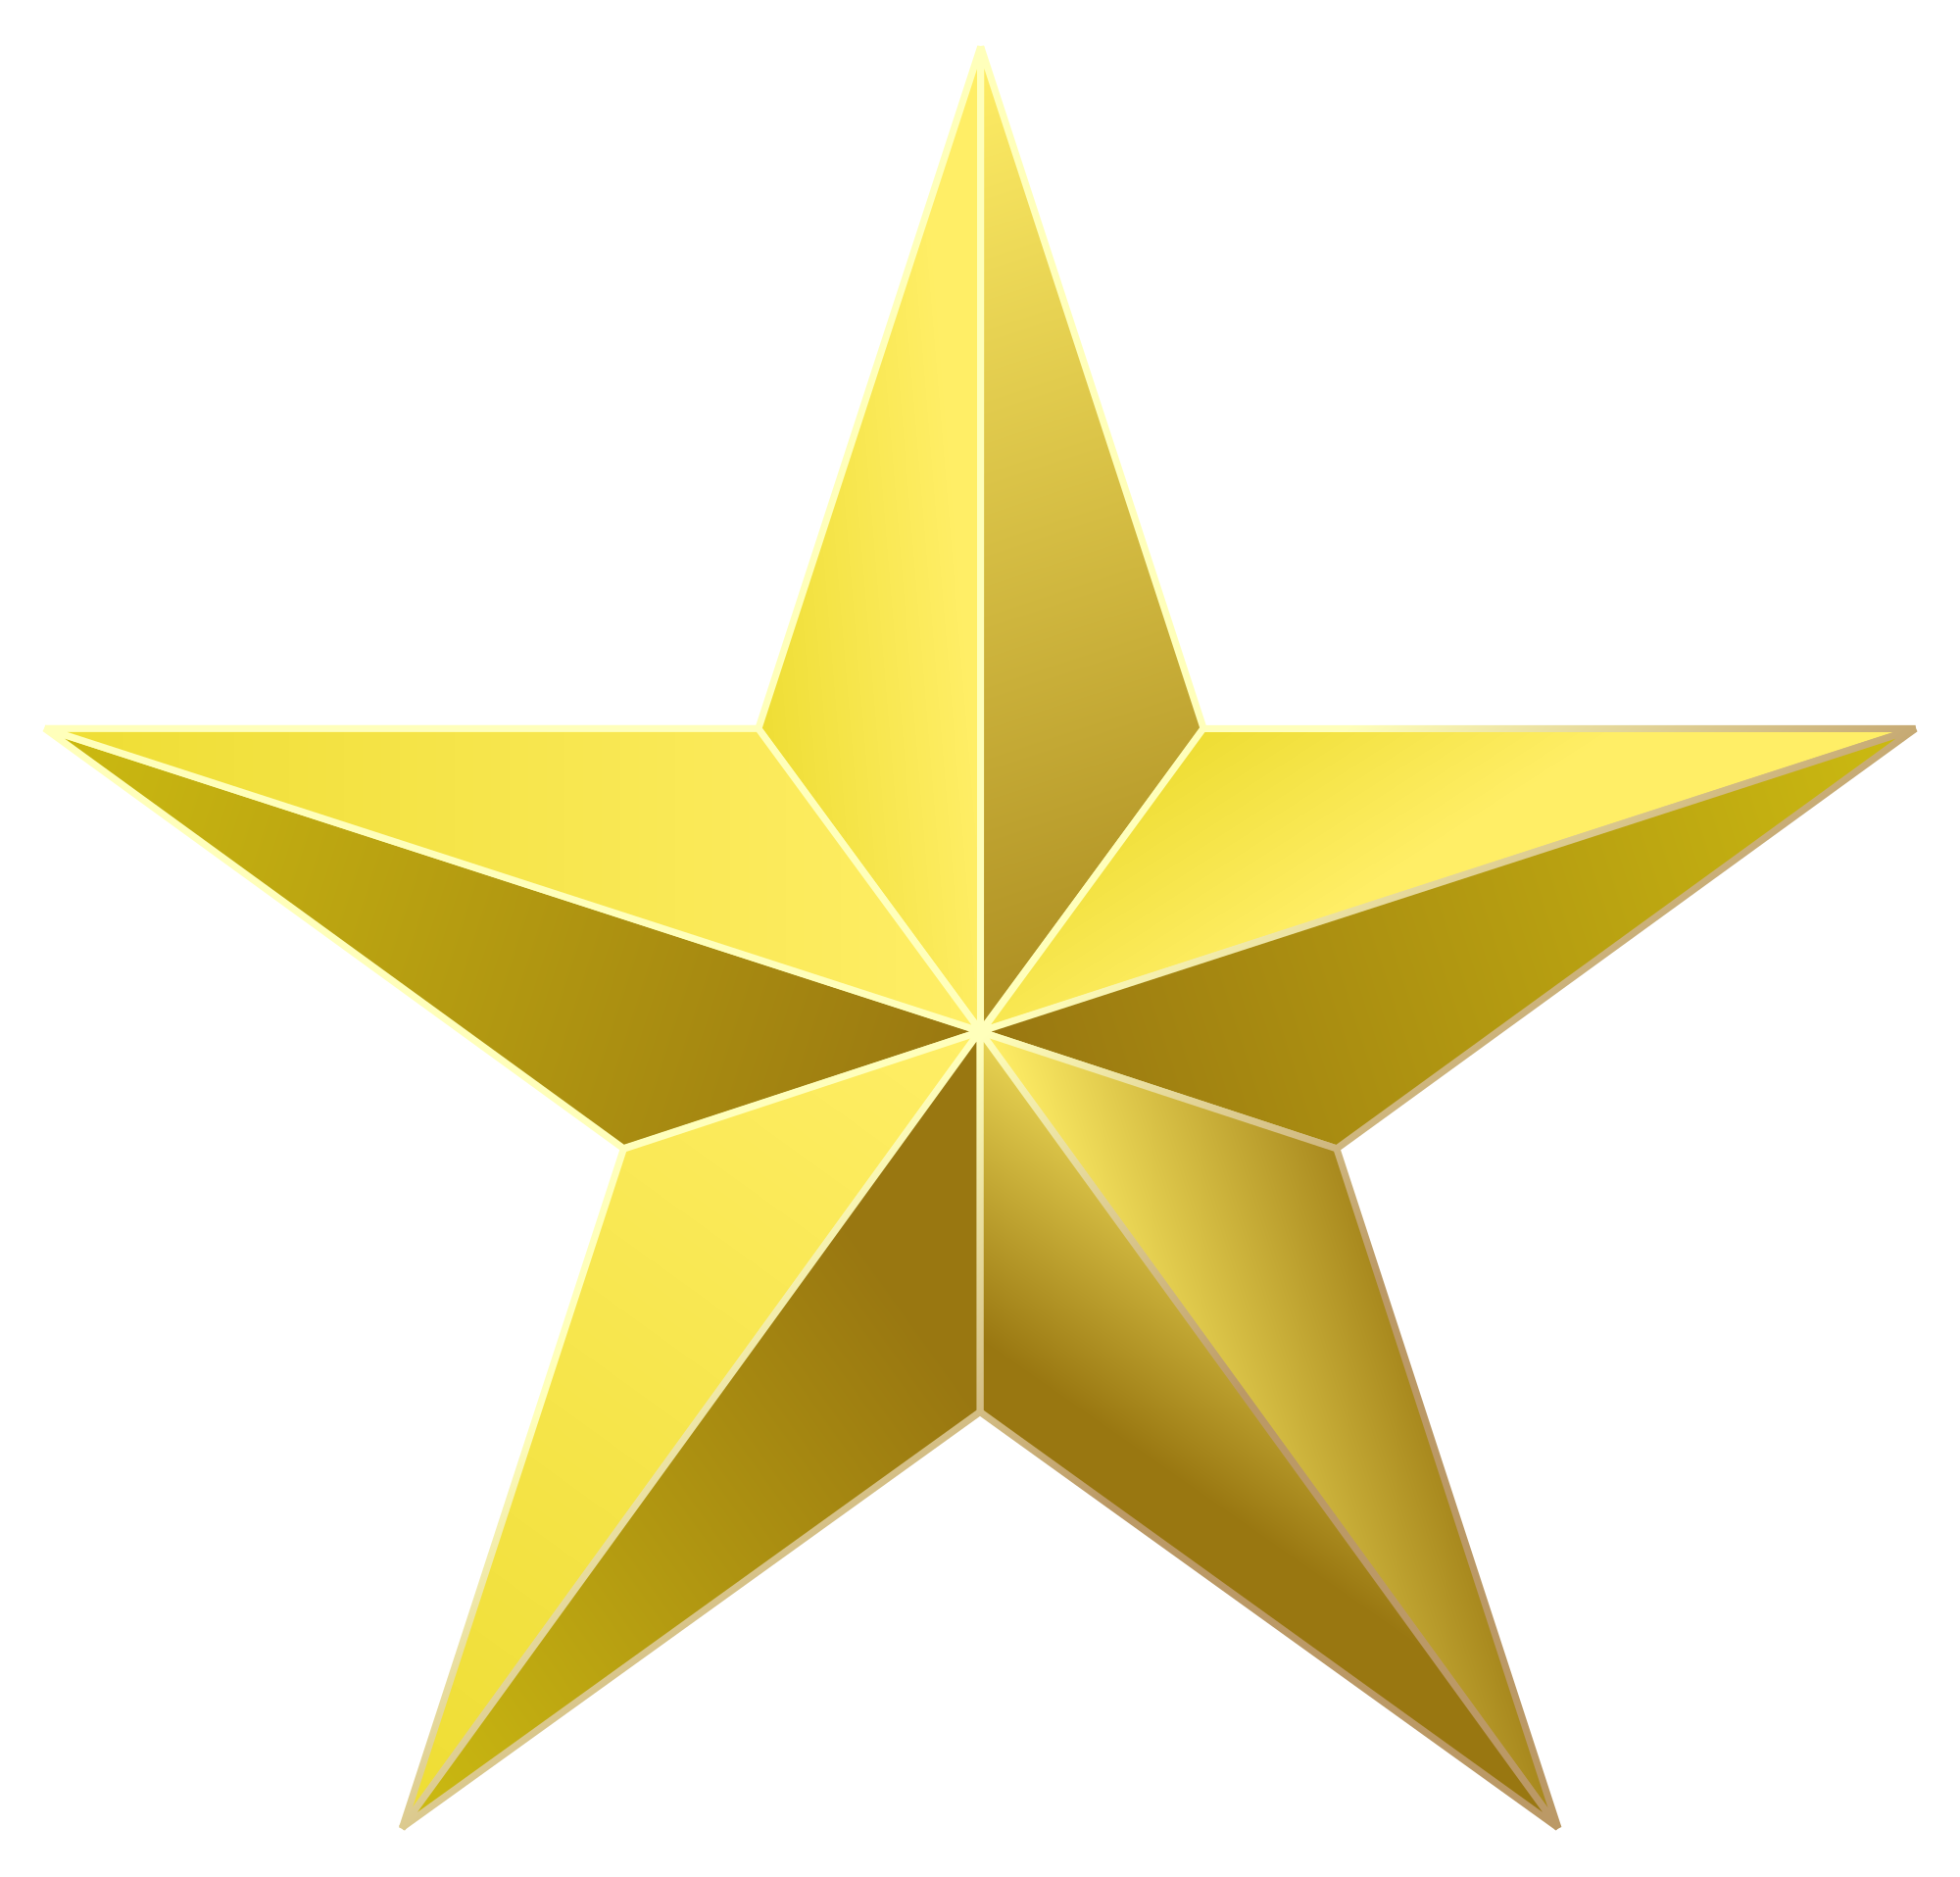 Gold star award image clipart images gallery for free download.